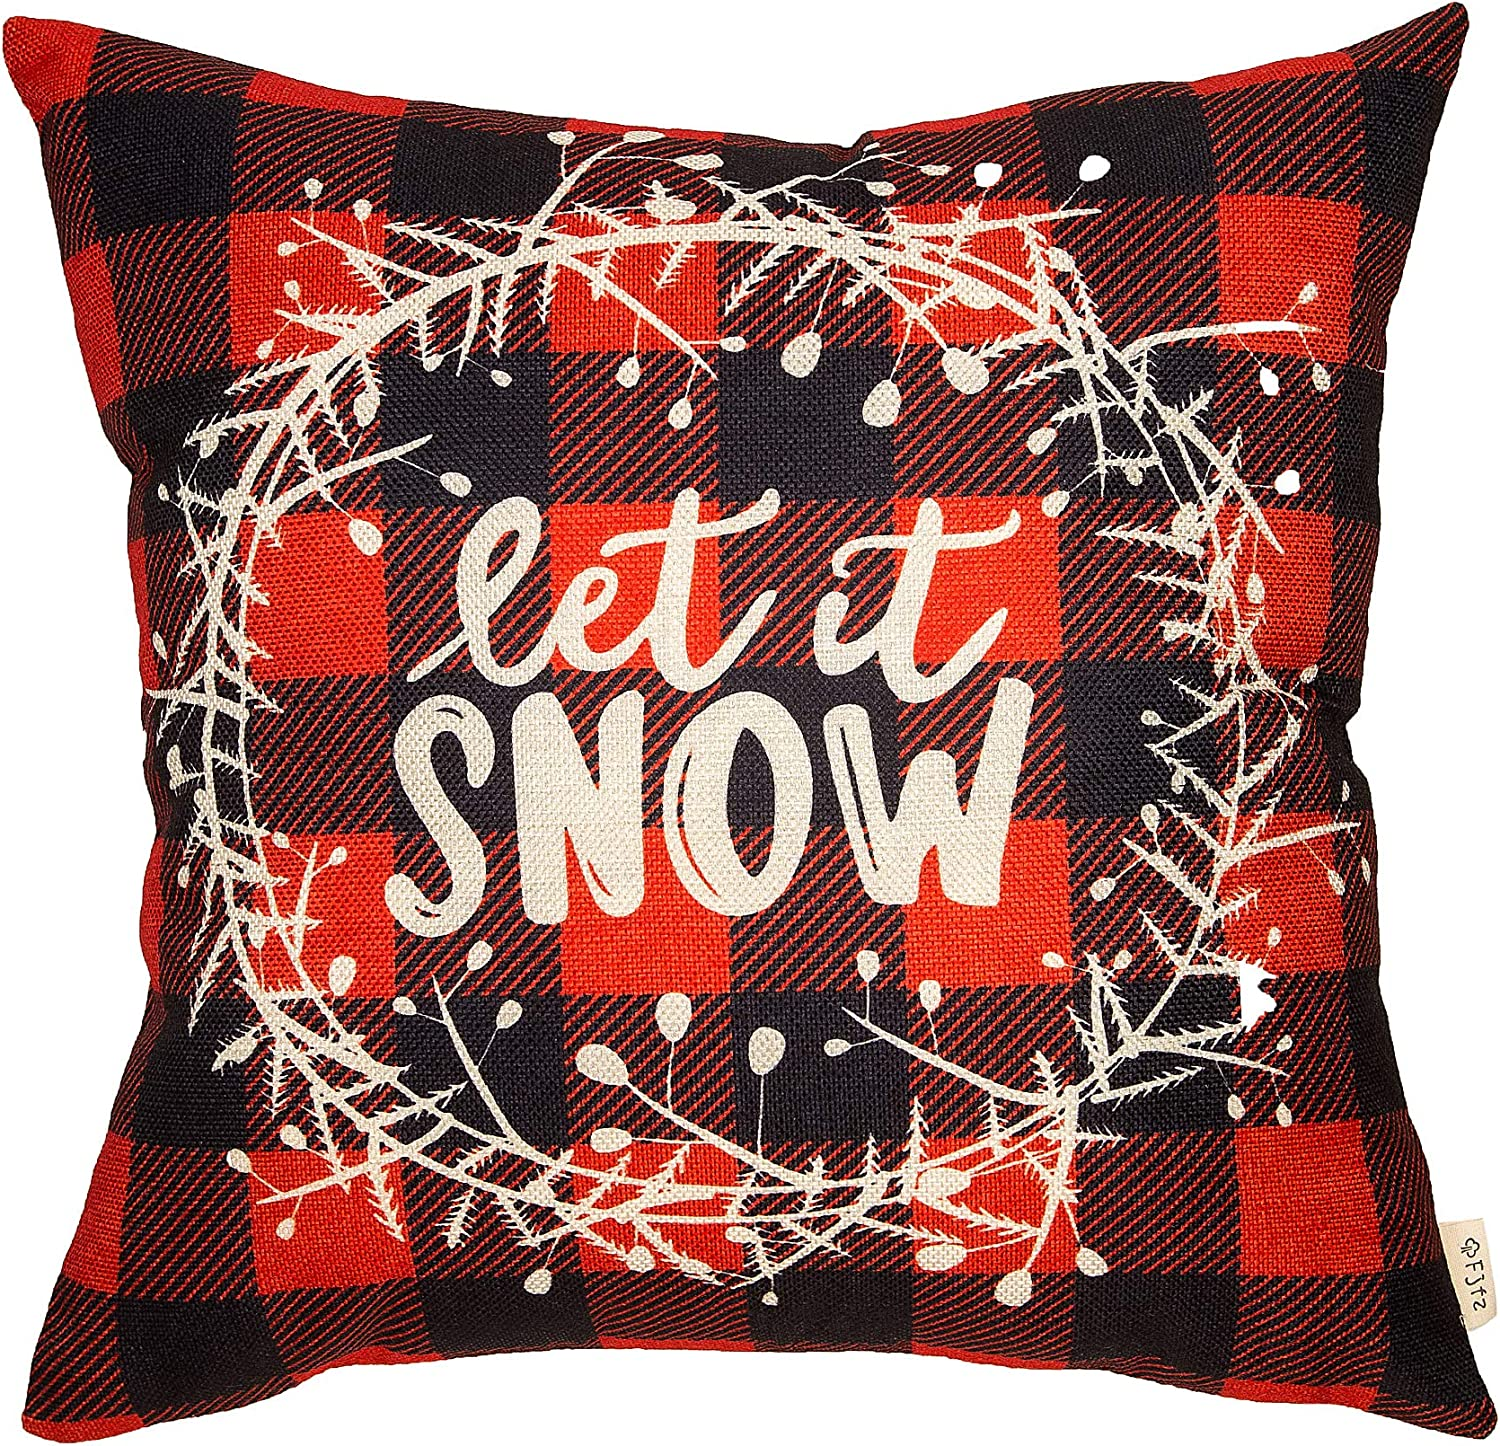 """Fjfz Christmas Holiday Decor Red and Black Buffalo Checkers Plaid Let it Snow Winter Sign Decoration Cotton Linen Home Decorative Throw Pillow Case Cushion Cover with Words for Sofa Couch, 18"""" x 18"""""""